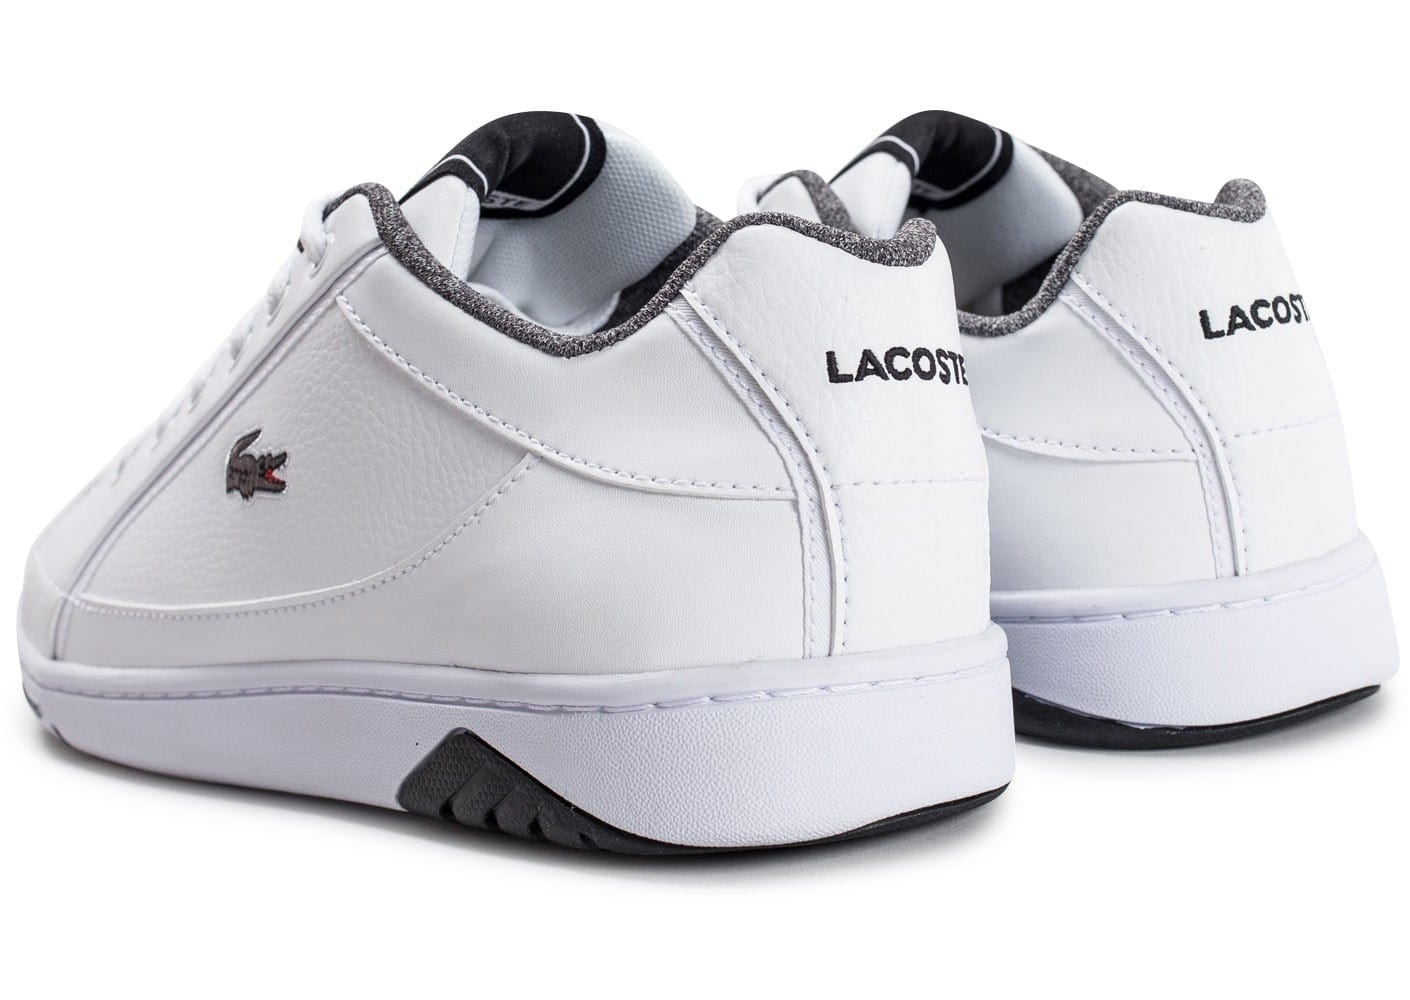 Grise Lacoste Deviation Et Blanche Chaussures Su1s7naf Homme Baskets EH9WD2YI